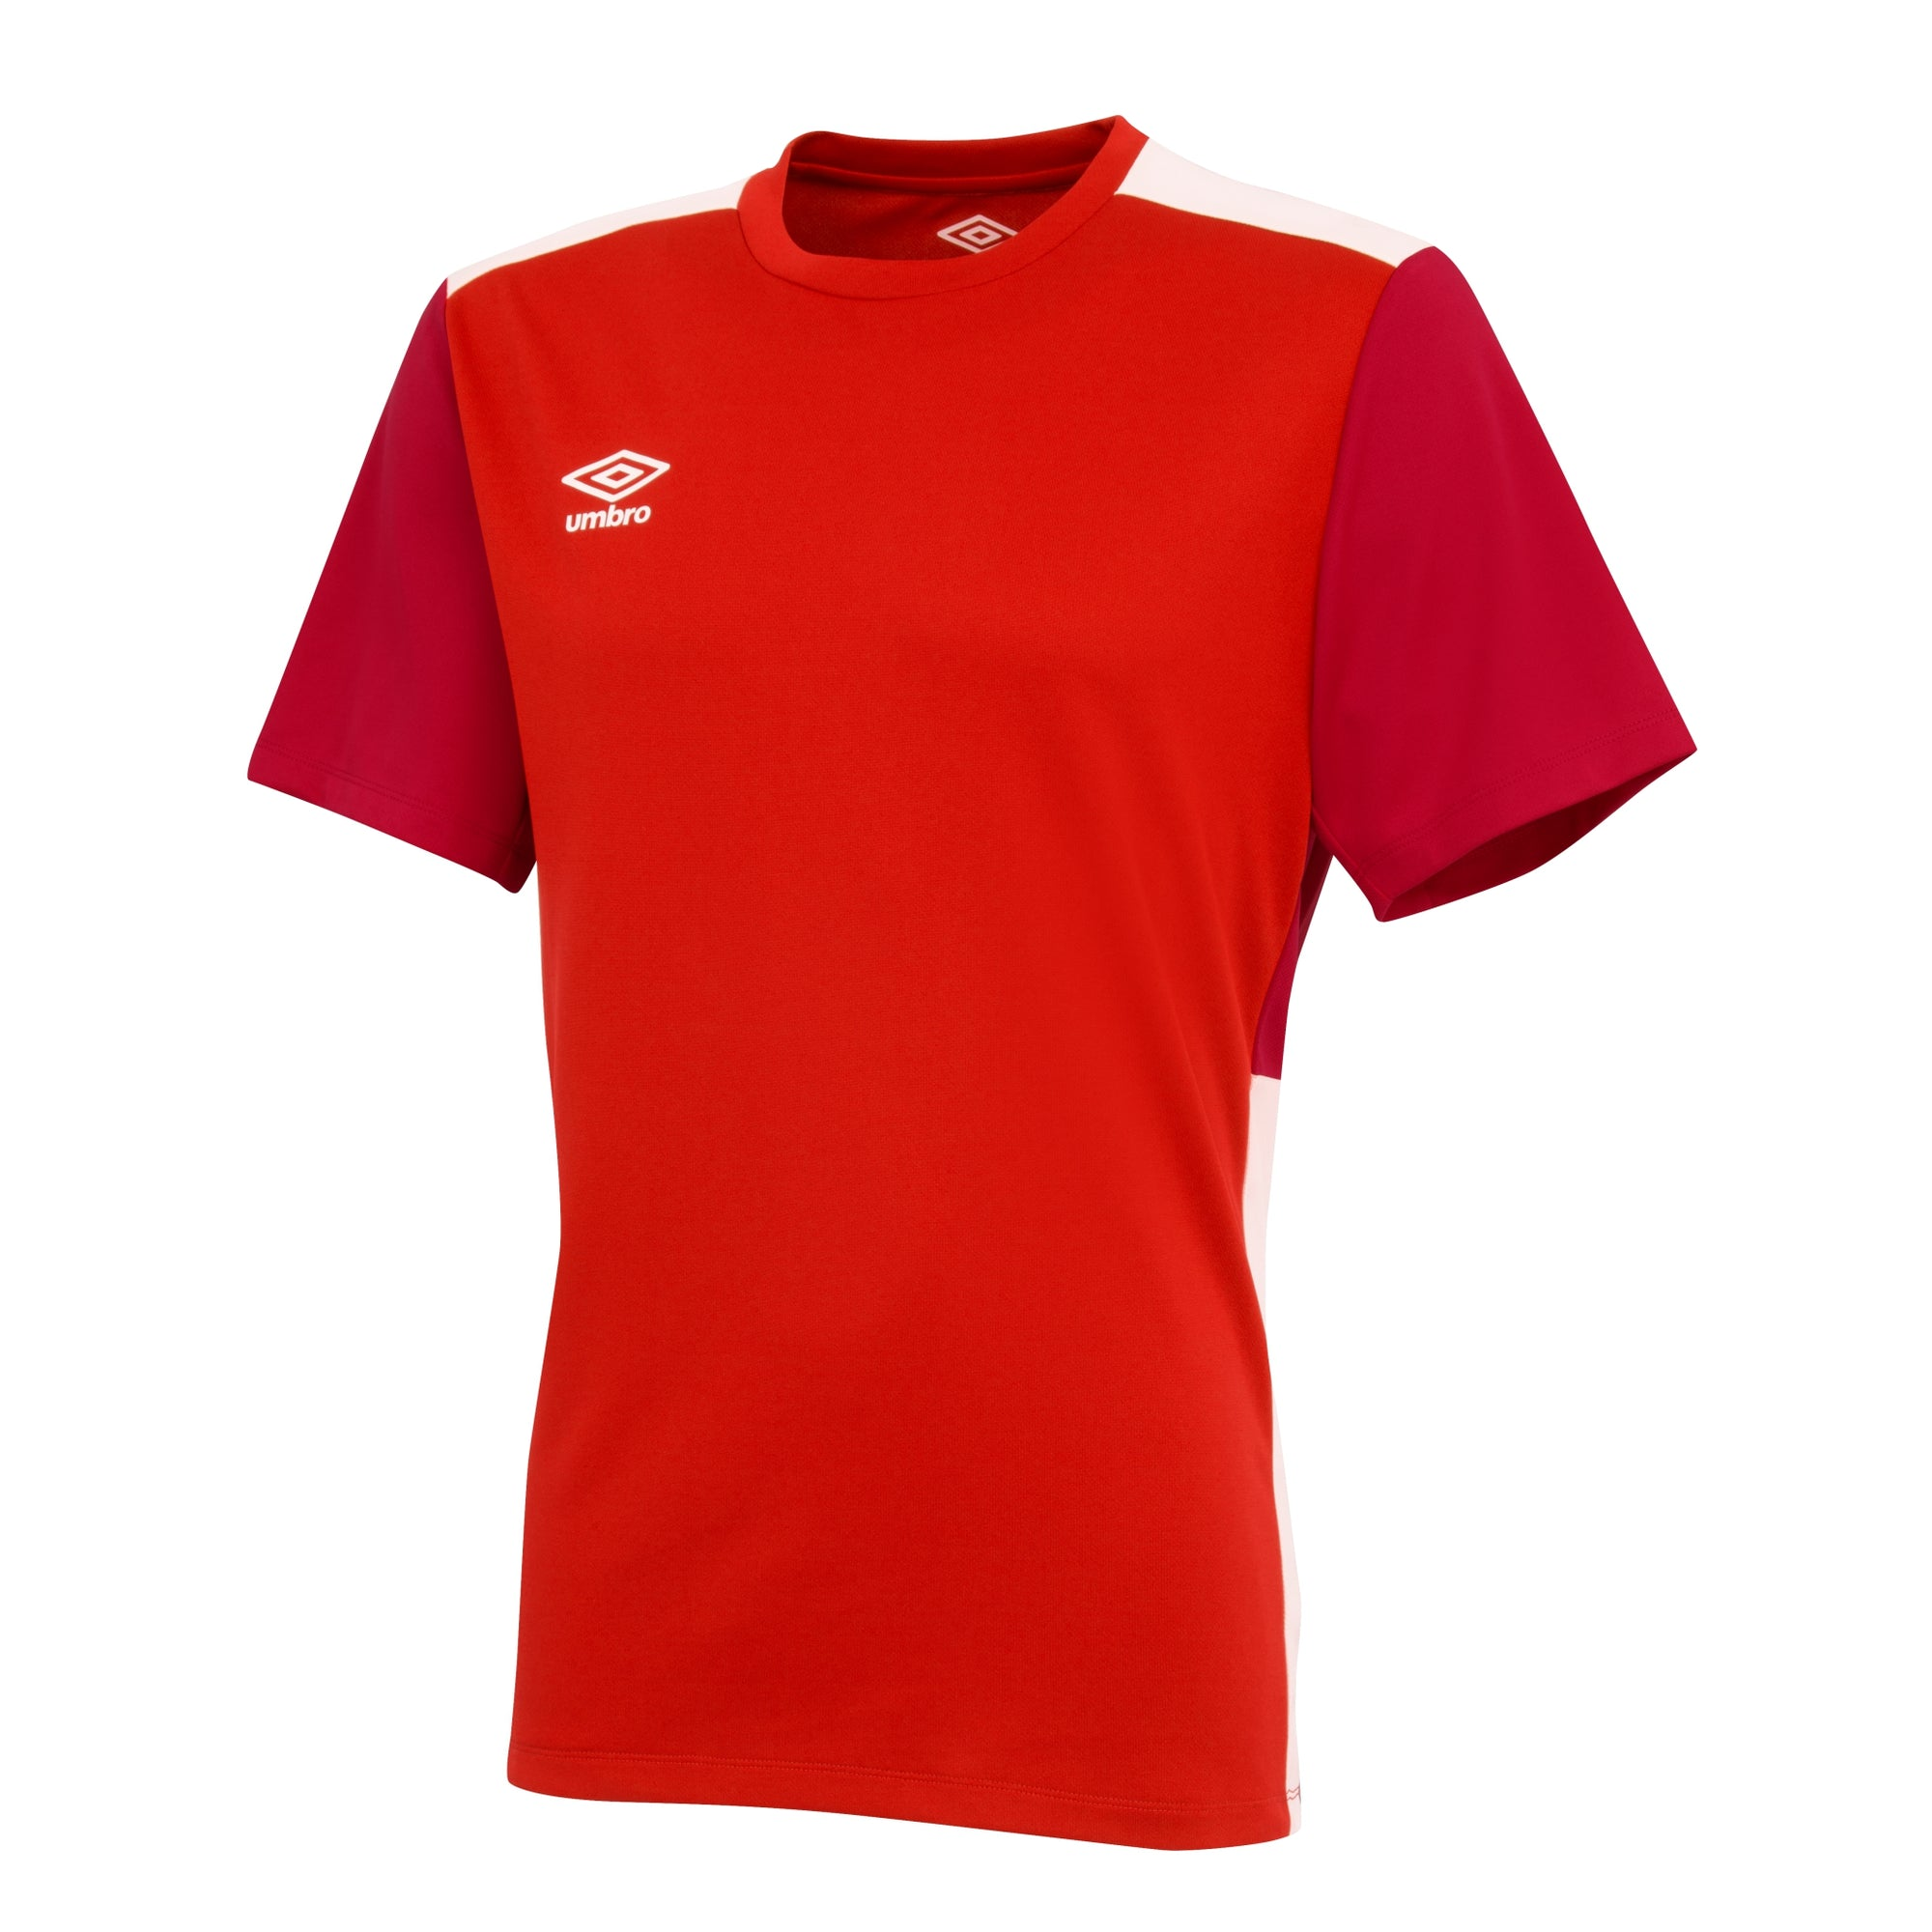 Umbro Training Jersey - Vermillion/Jester Red/White